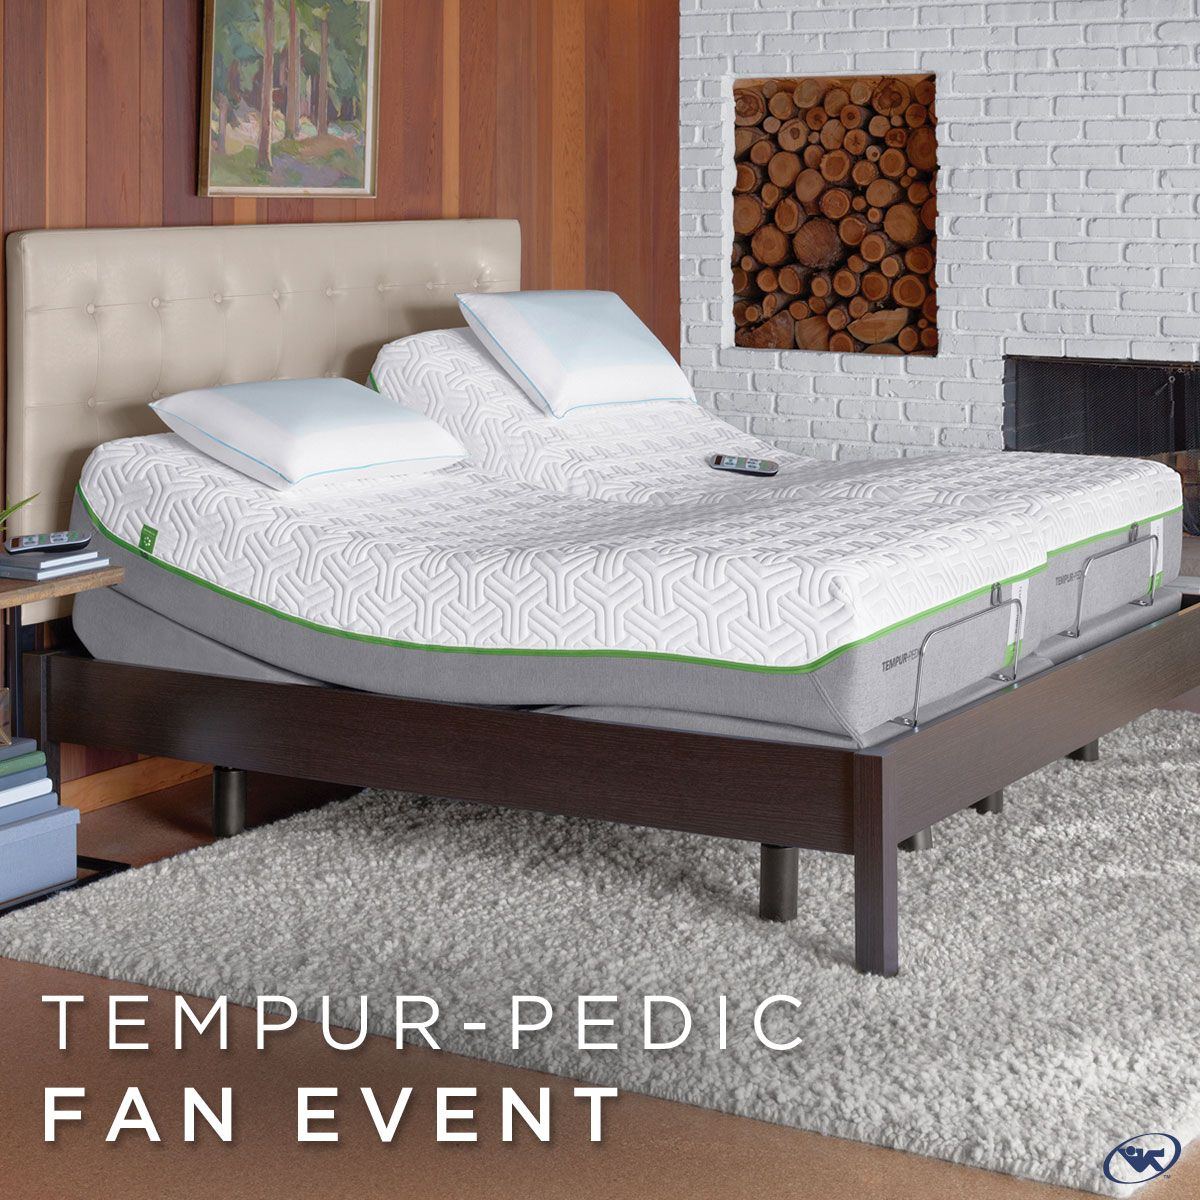 save big during our tempur pedic fan event going on through memorial